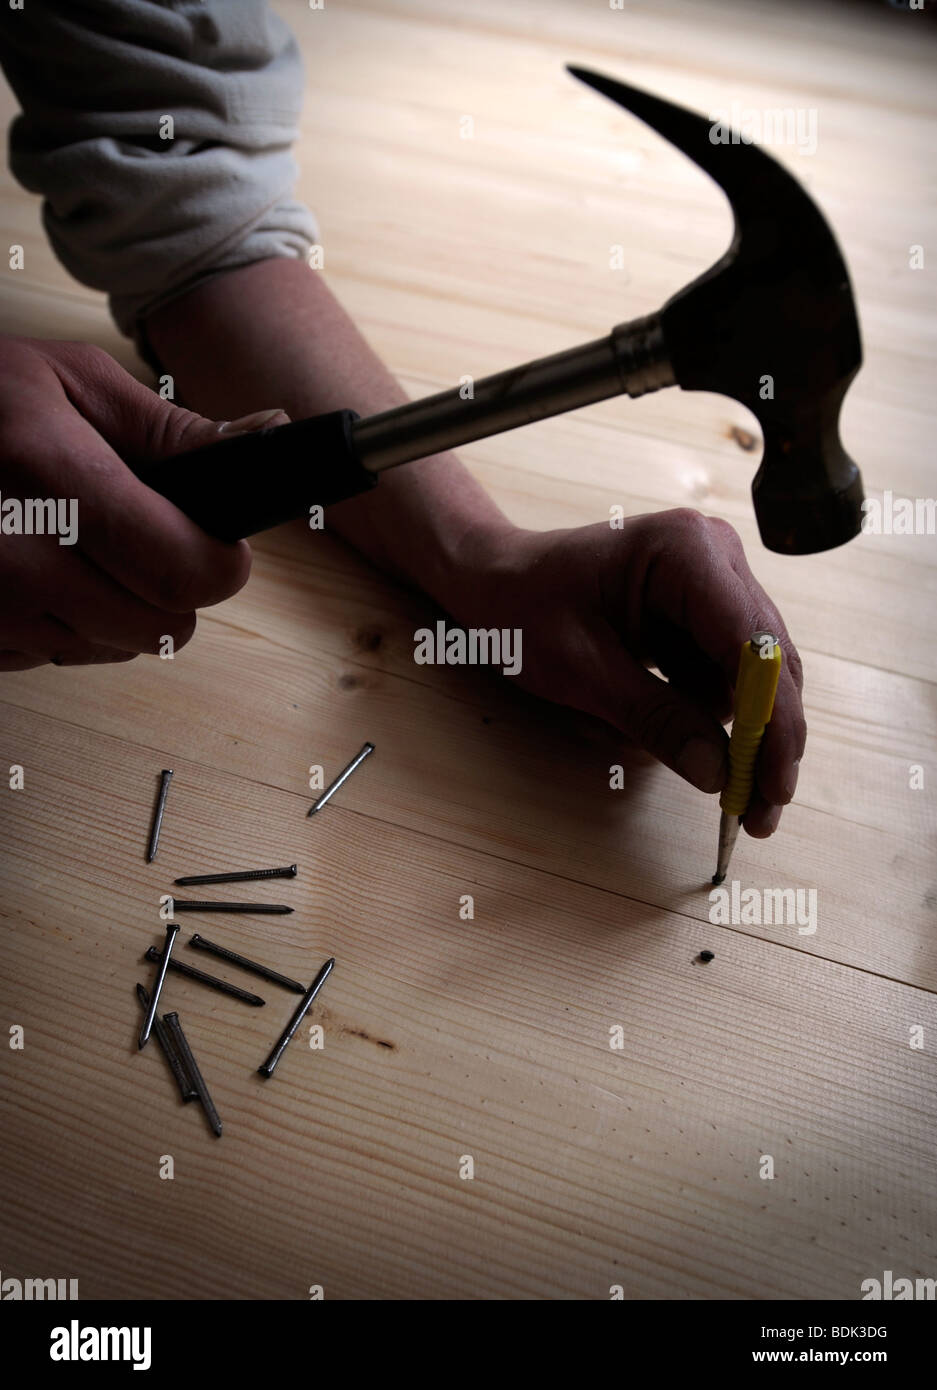 USING A PUNCH TO DRIVE HOME NAILS WITHOUT MARKING WOODEN FLOORING PLANKS - Stock Image